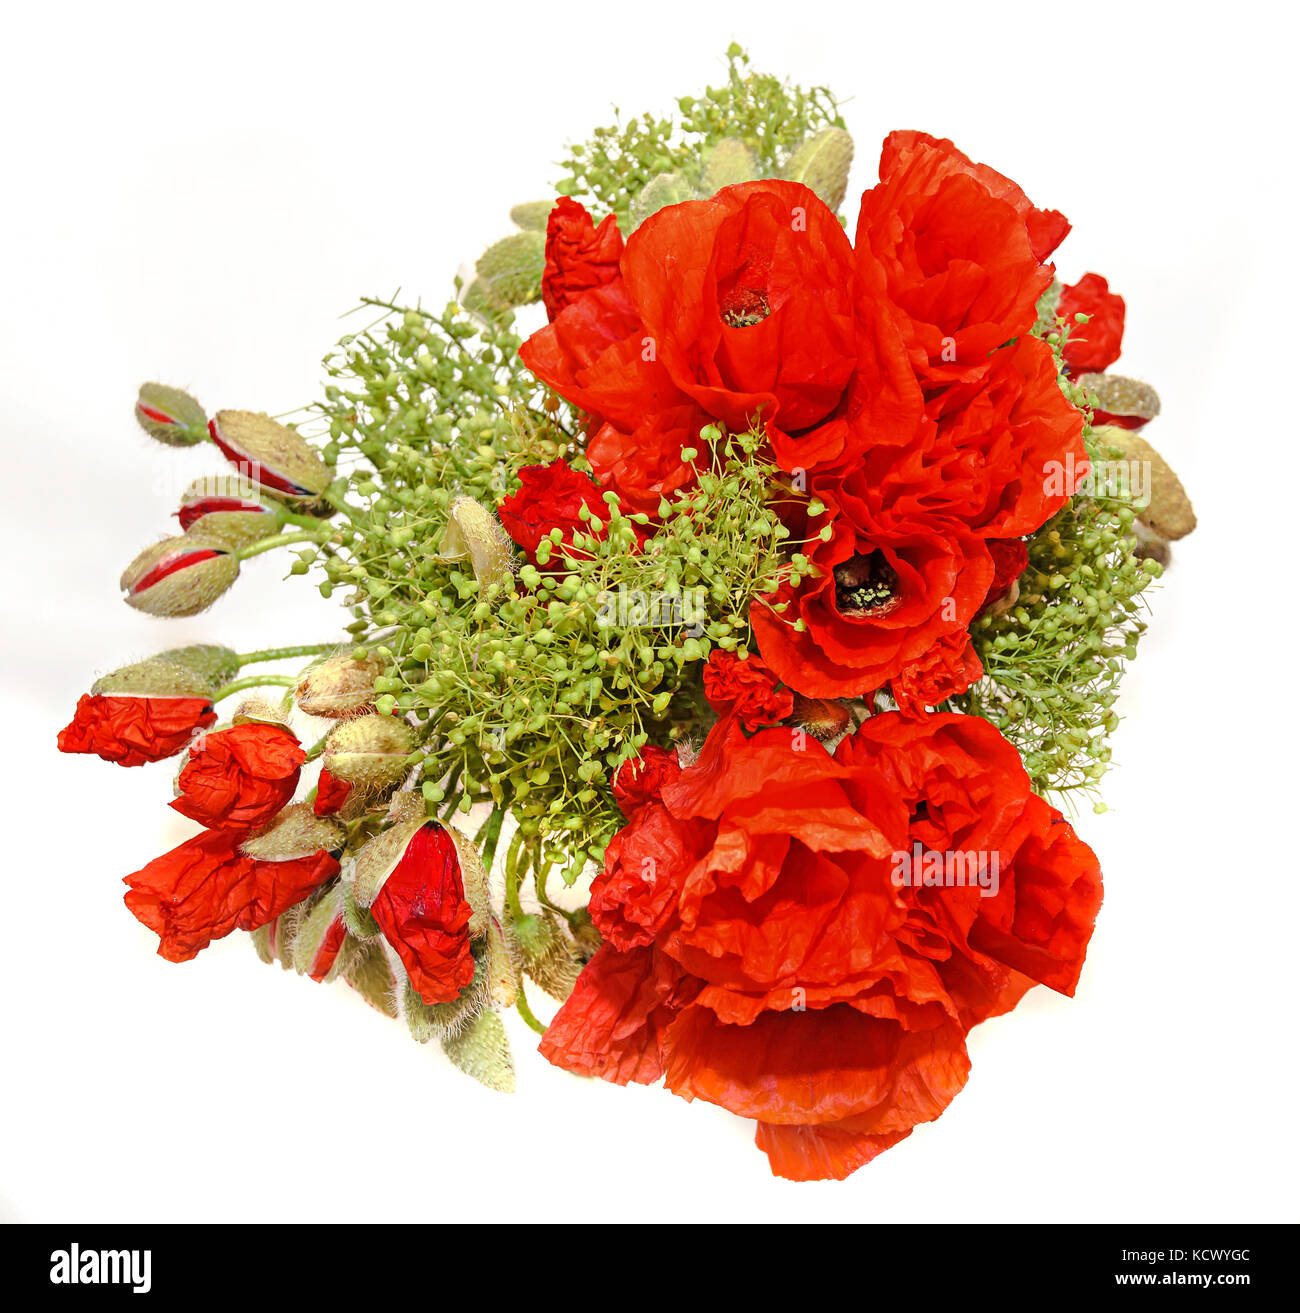 Red wild flowers of Papaver rhoeas bouquet, corn field poppy with buds, close up. - Stock Image